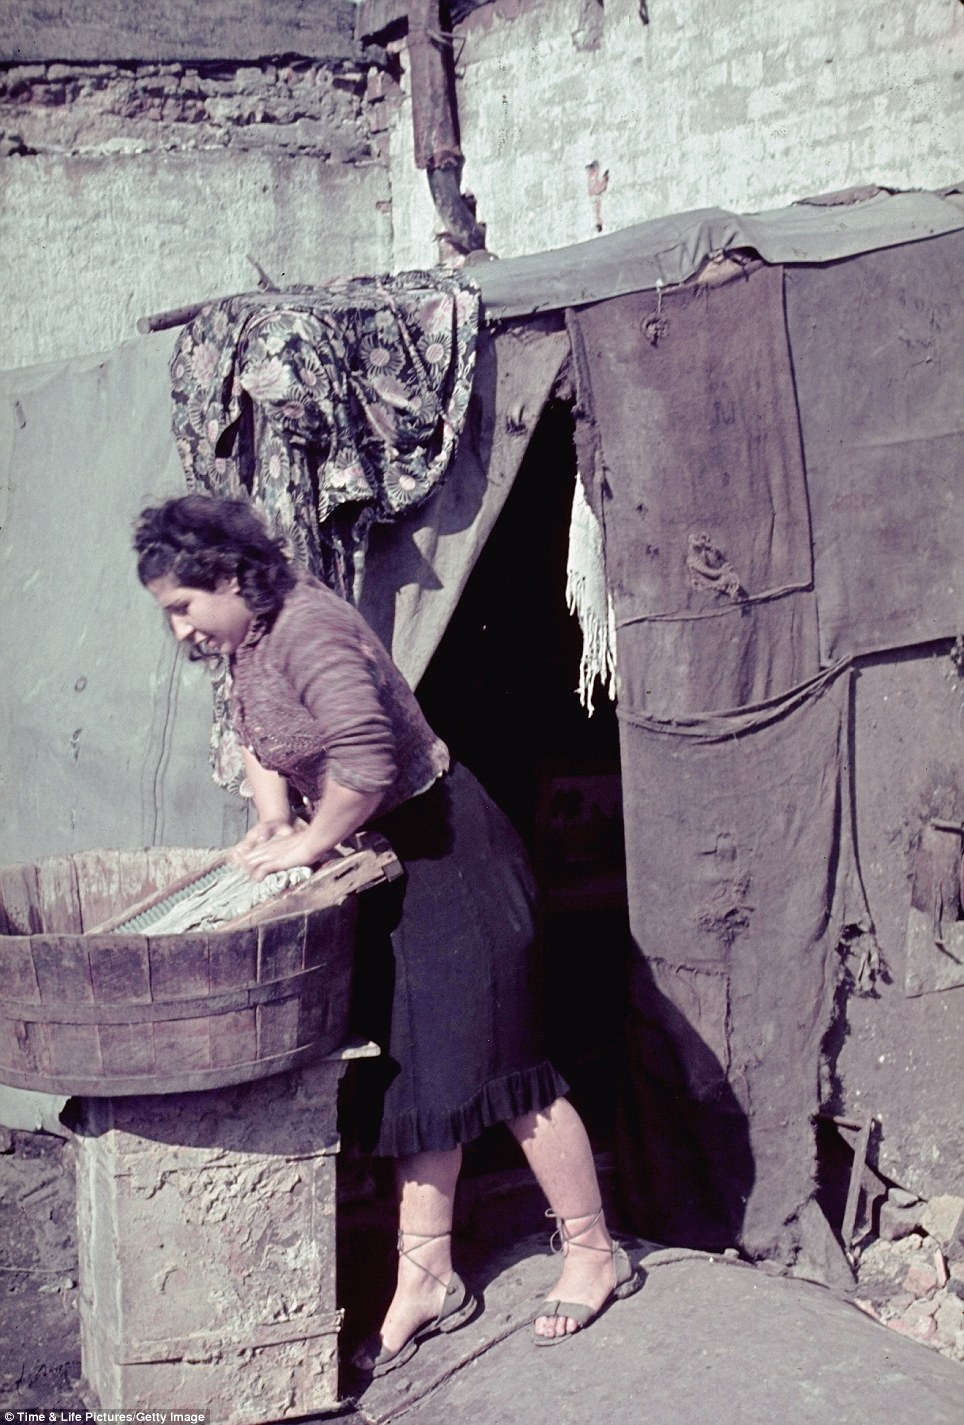 A Jewish woman uses a washing board to clean clothes in the Kutno. Unusually for an ardent Nazi, Jaeger's allowed his Jewish subjects to retain their dignity and humanity